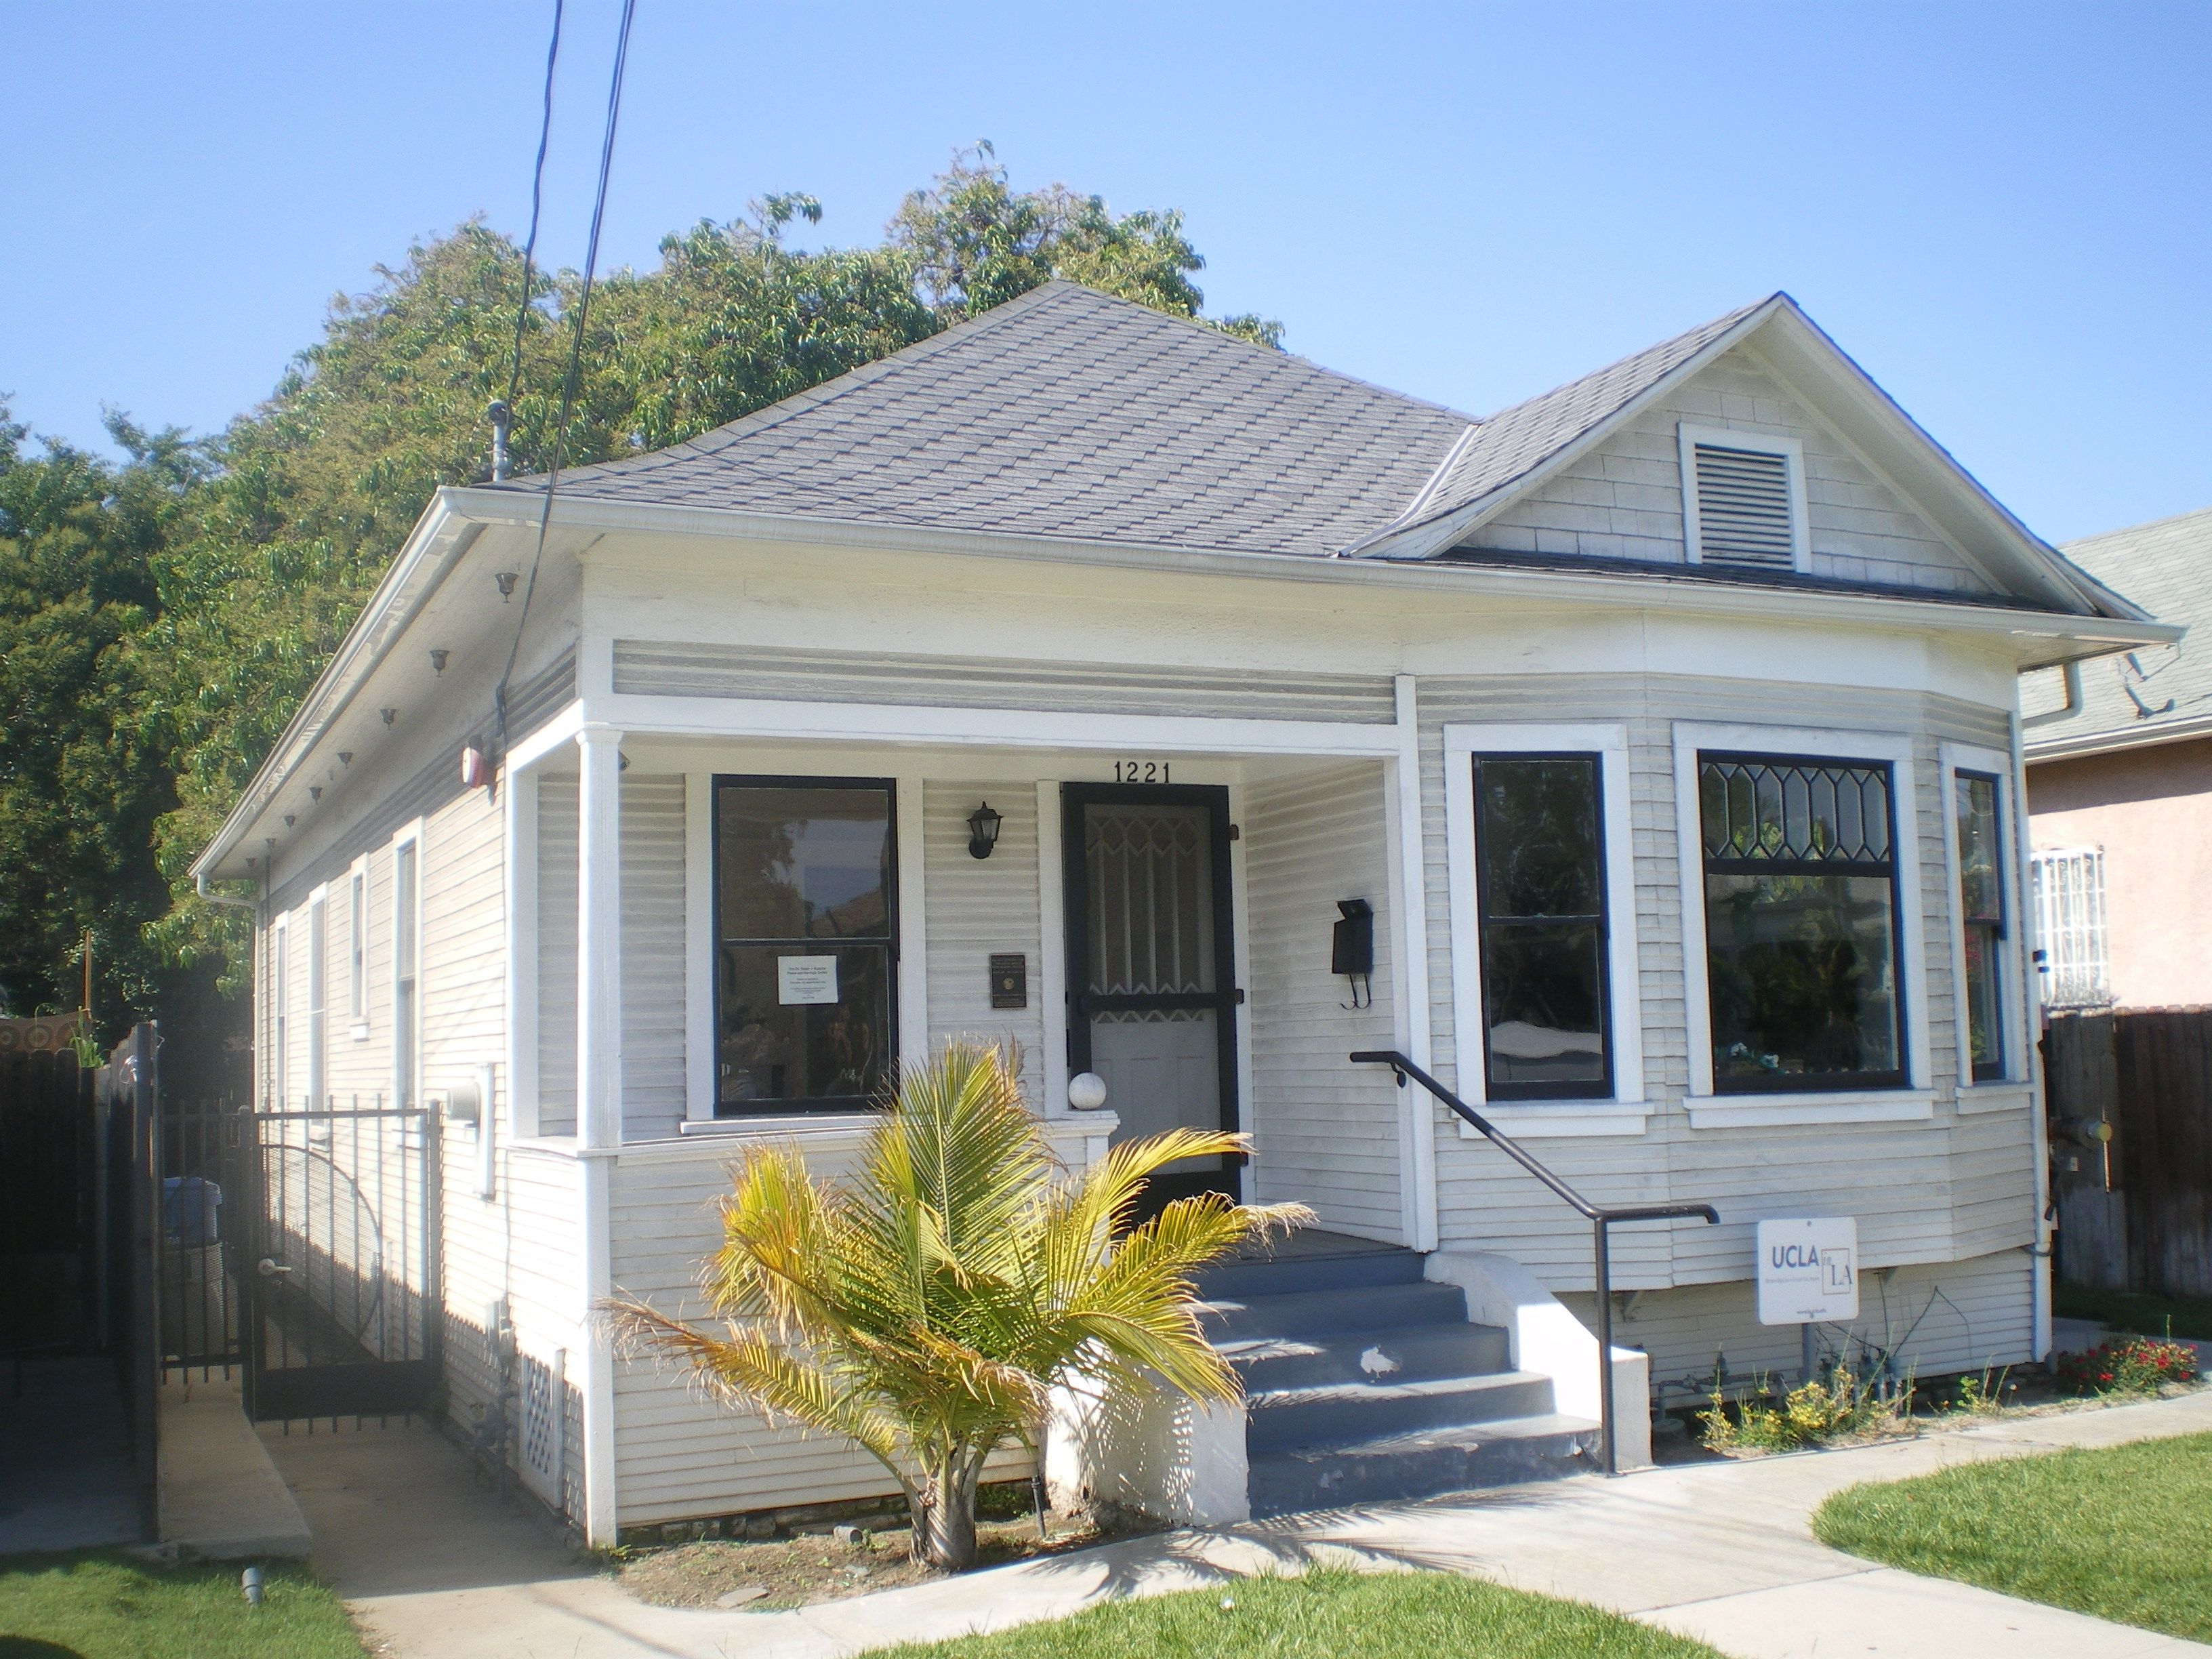 Cute Little House Los Angeles Homes Real Estate Leads We Buy Houses